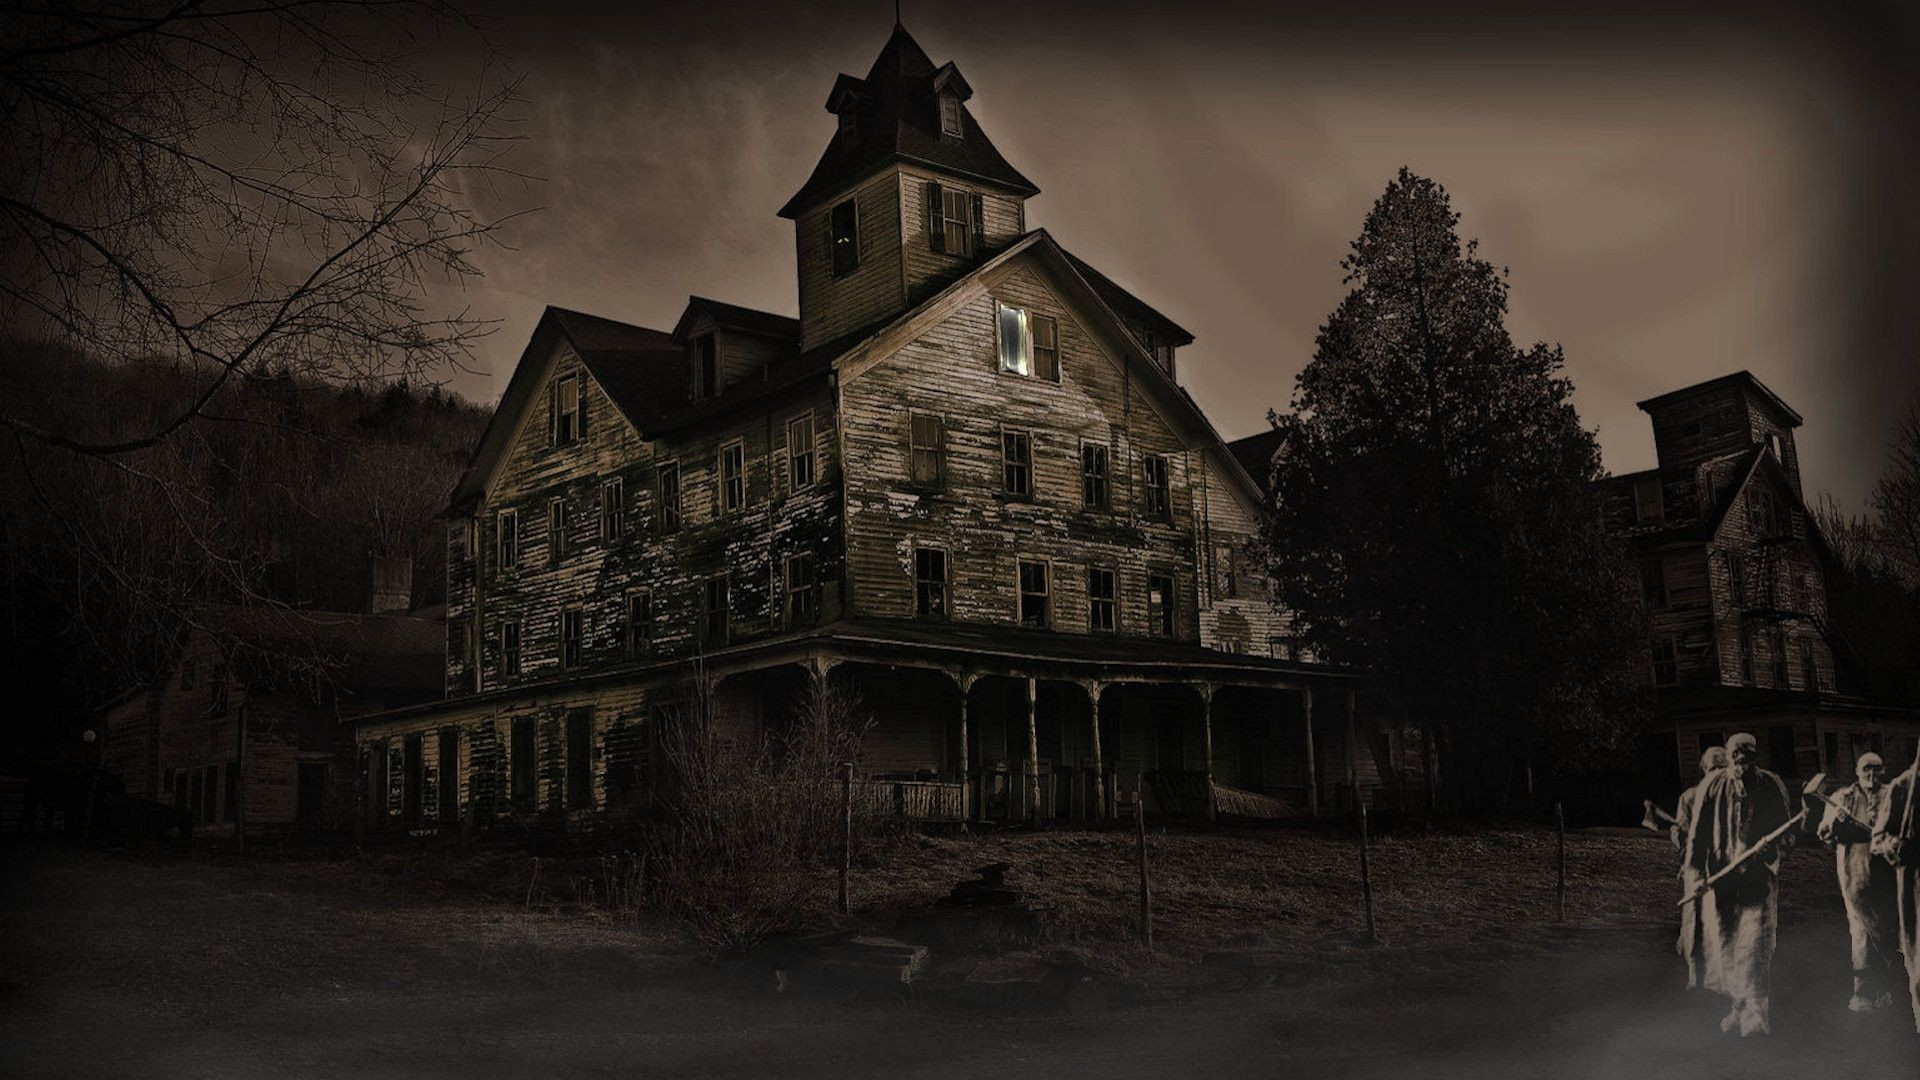 1920x1080 Haunted House Wallpapers Desktop - Wallpaper Cave